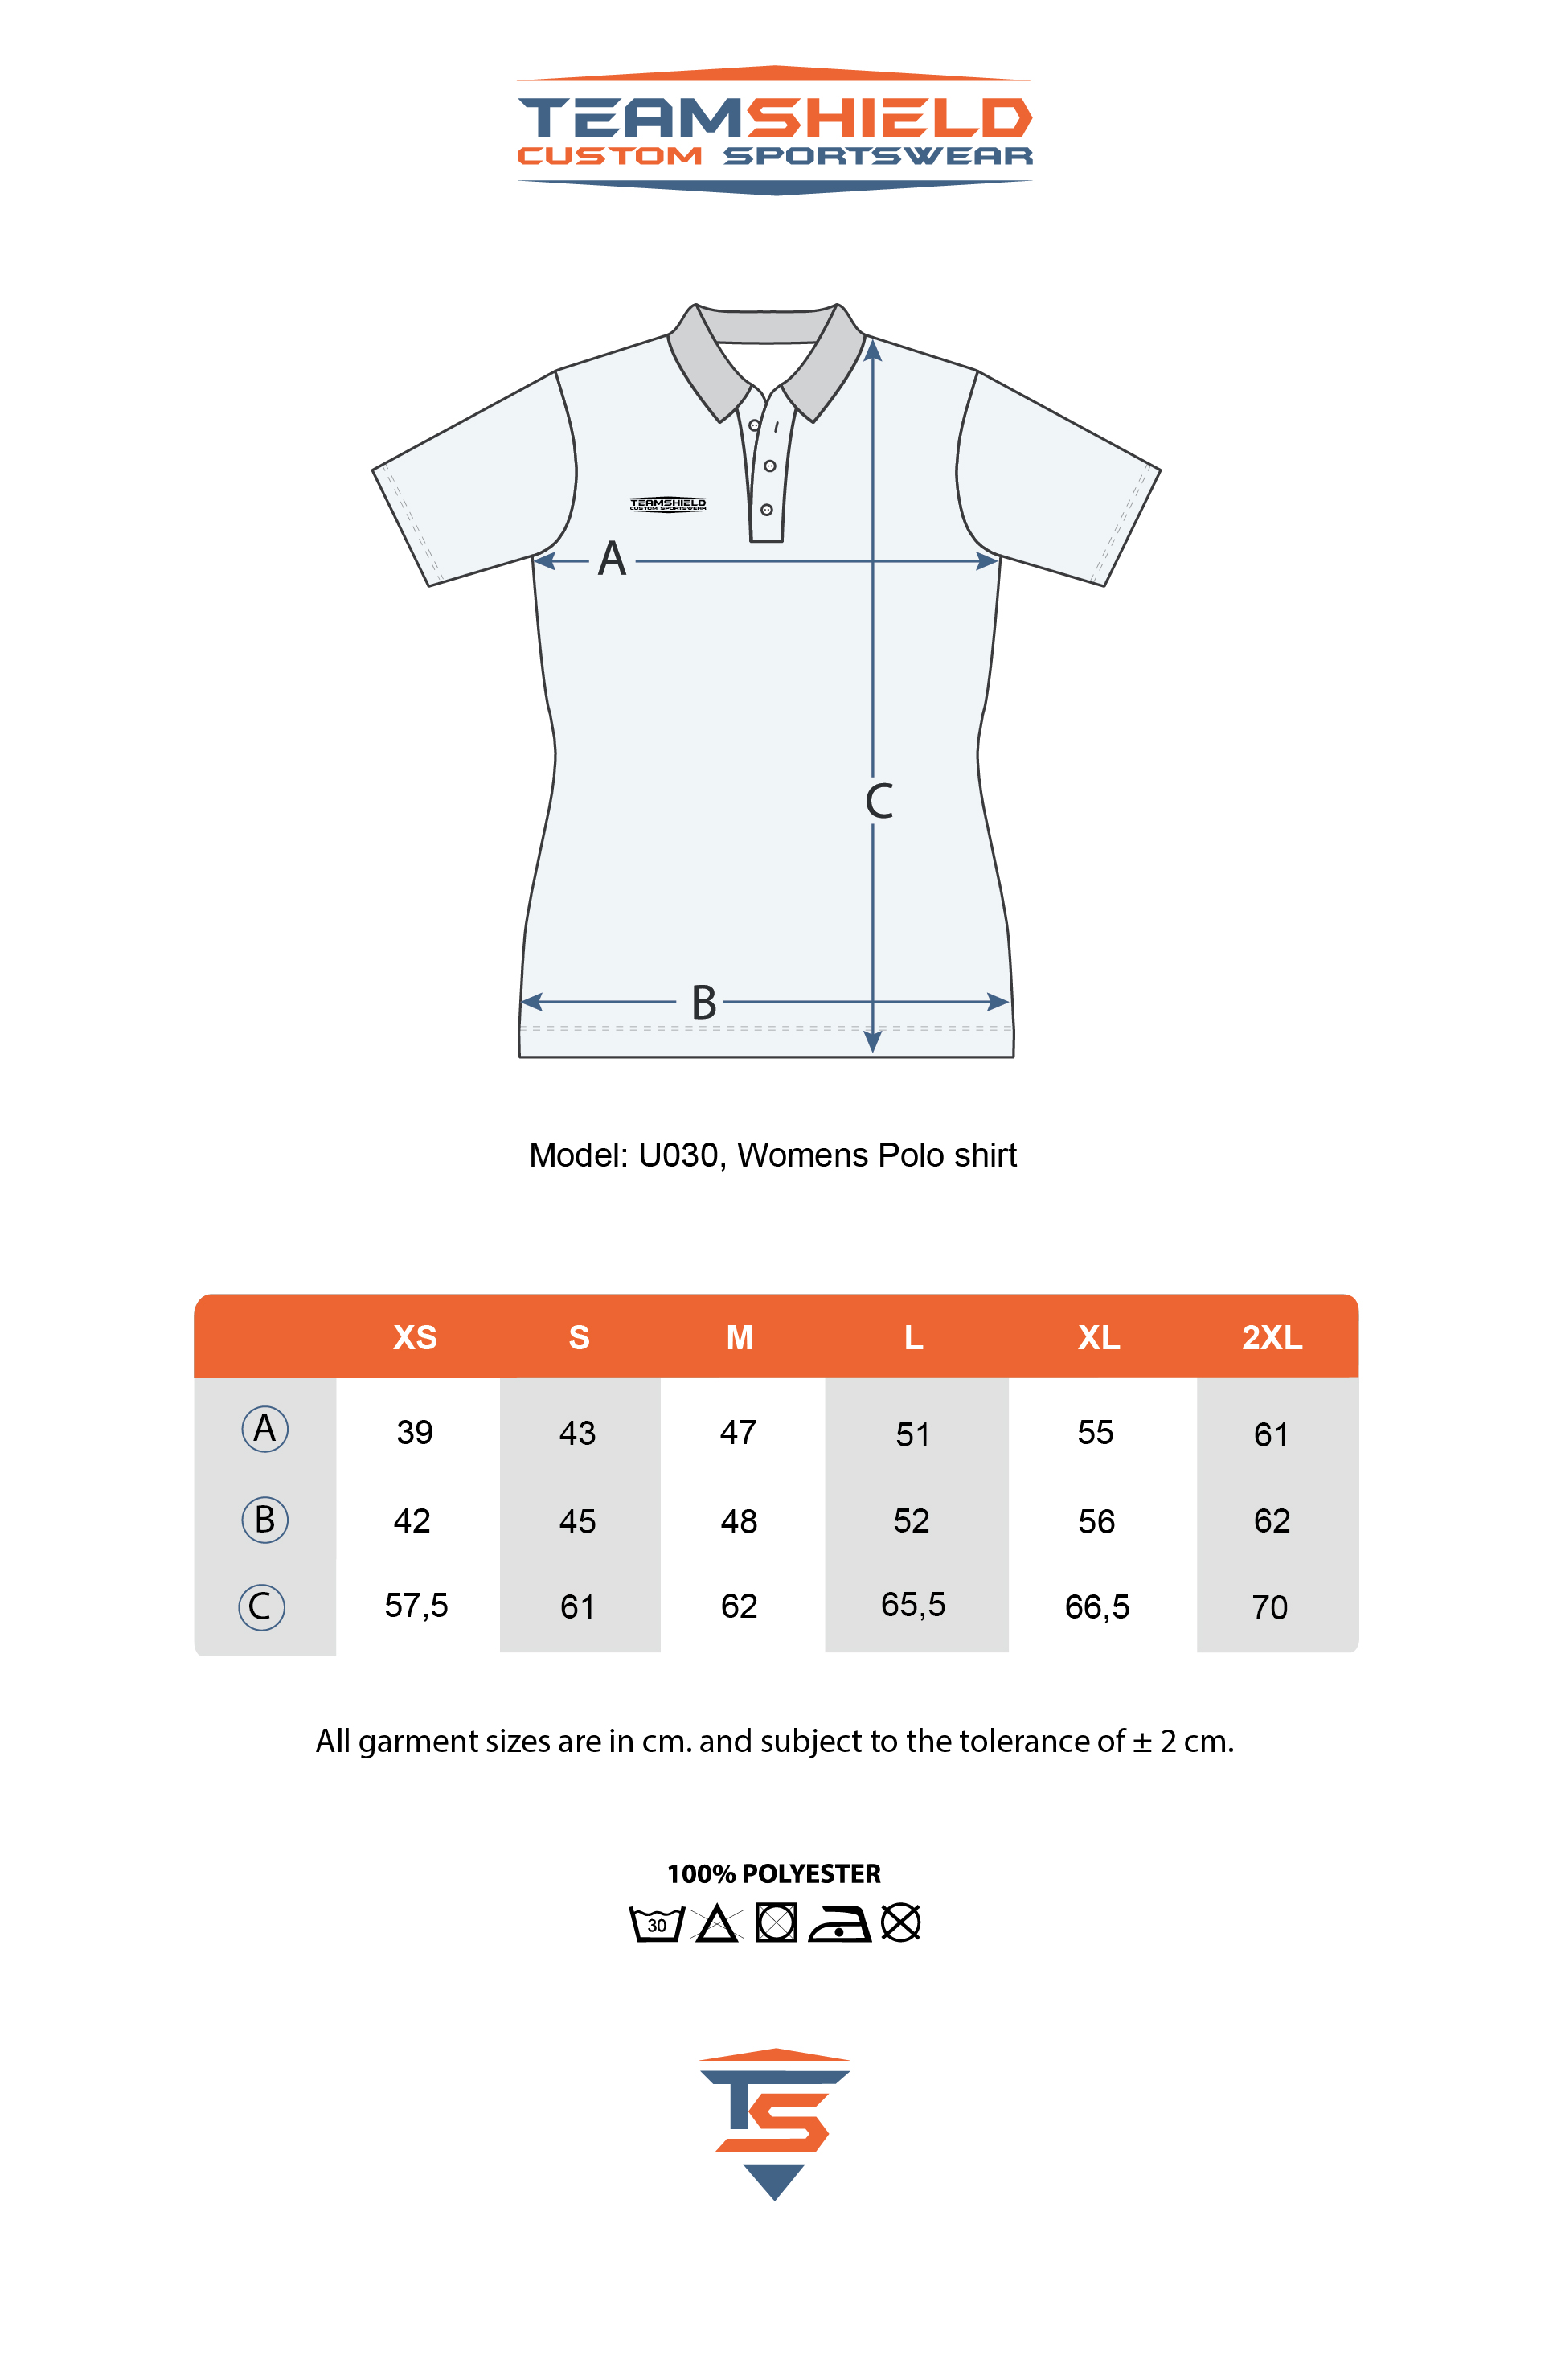 Teamshield-Custom-Teamwear-Sizechart-U030-Women-Polo-Sublimation-Shirt